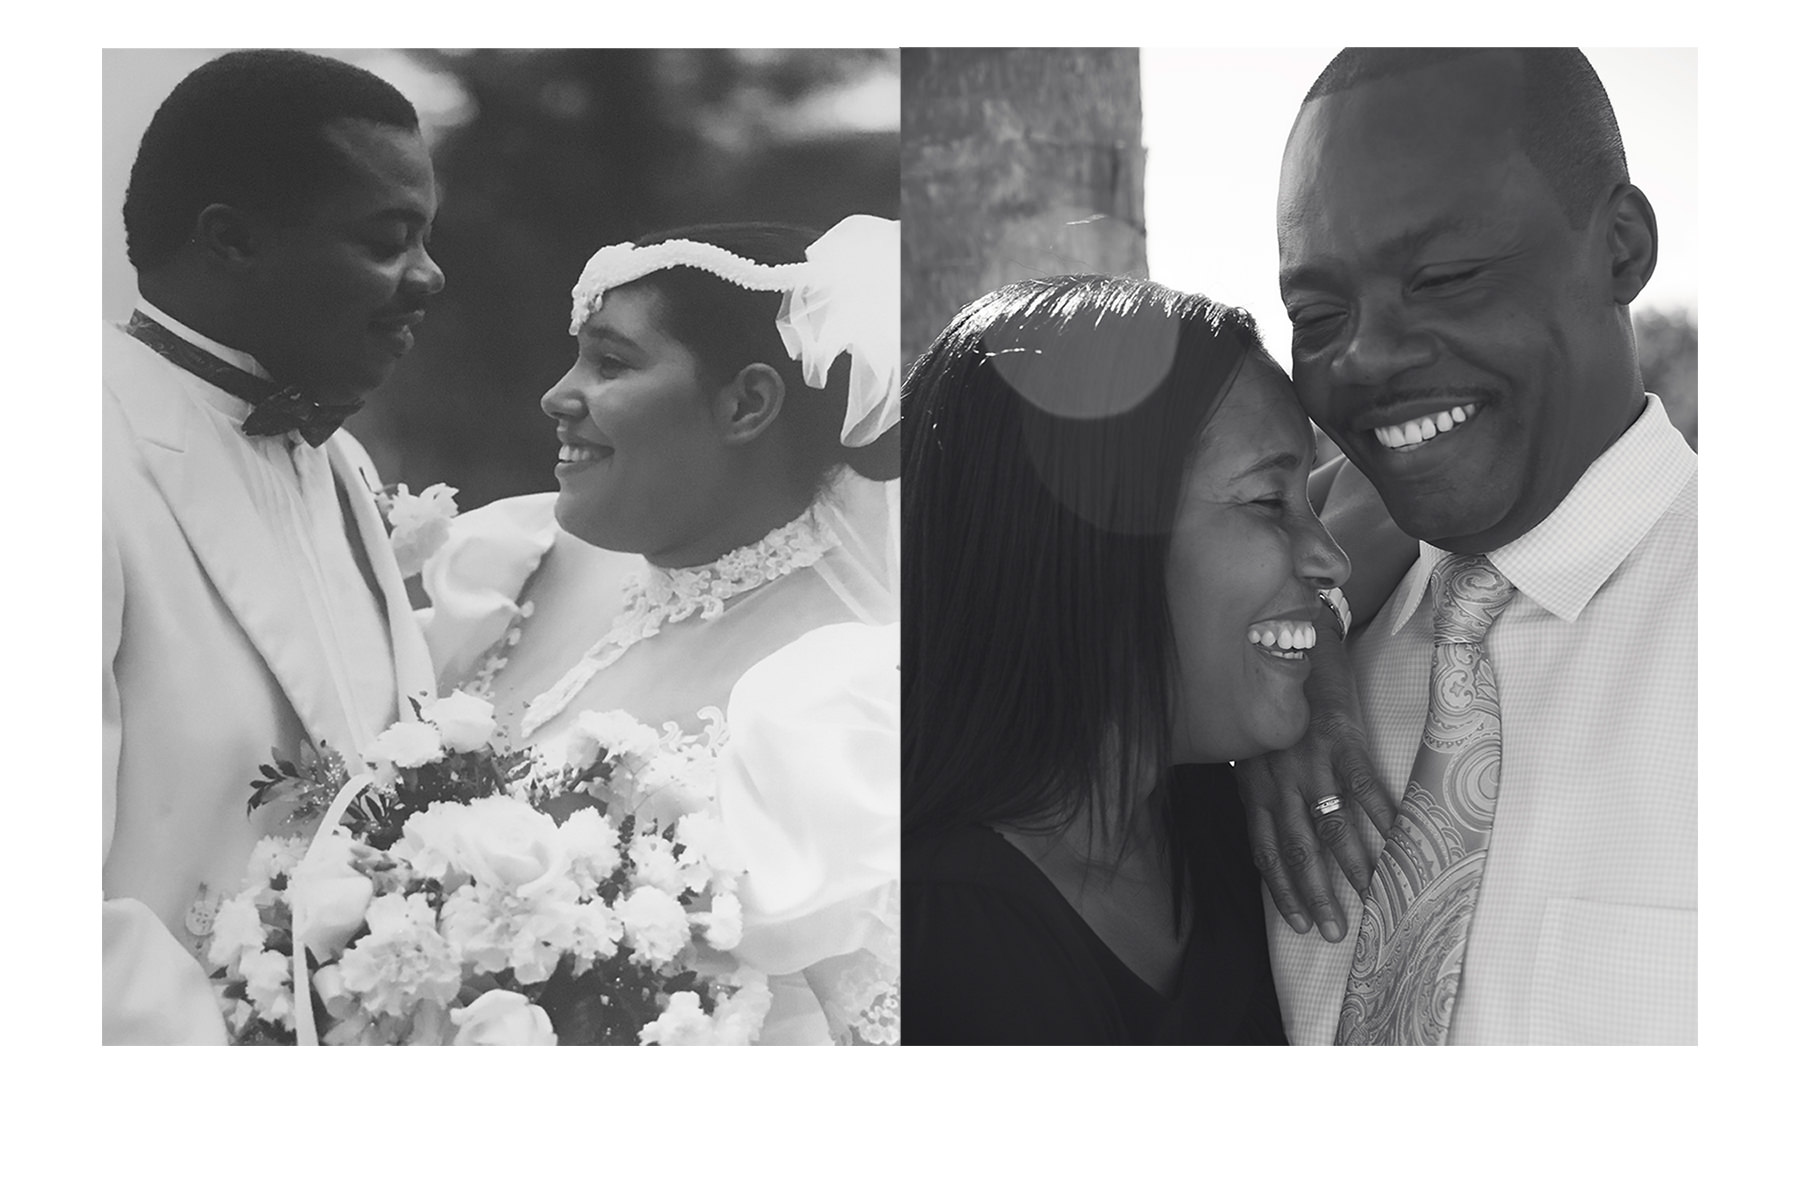 Wedding Day on the left. 25 years later on the right